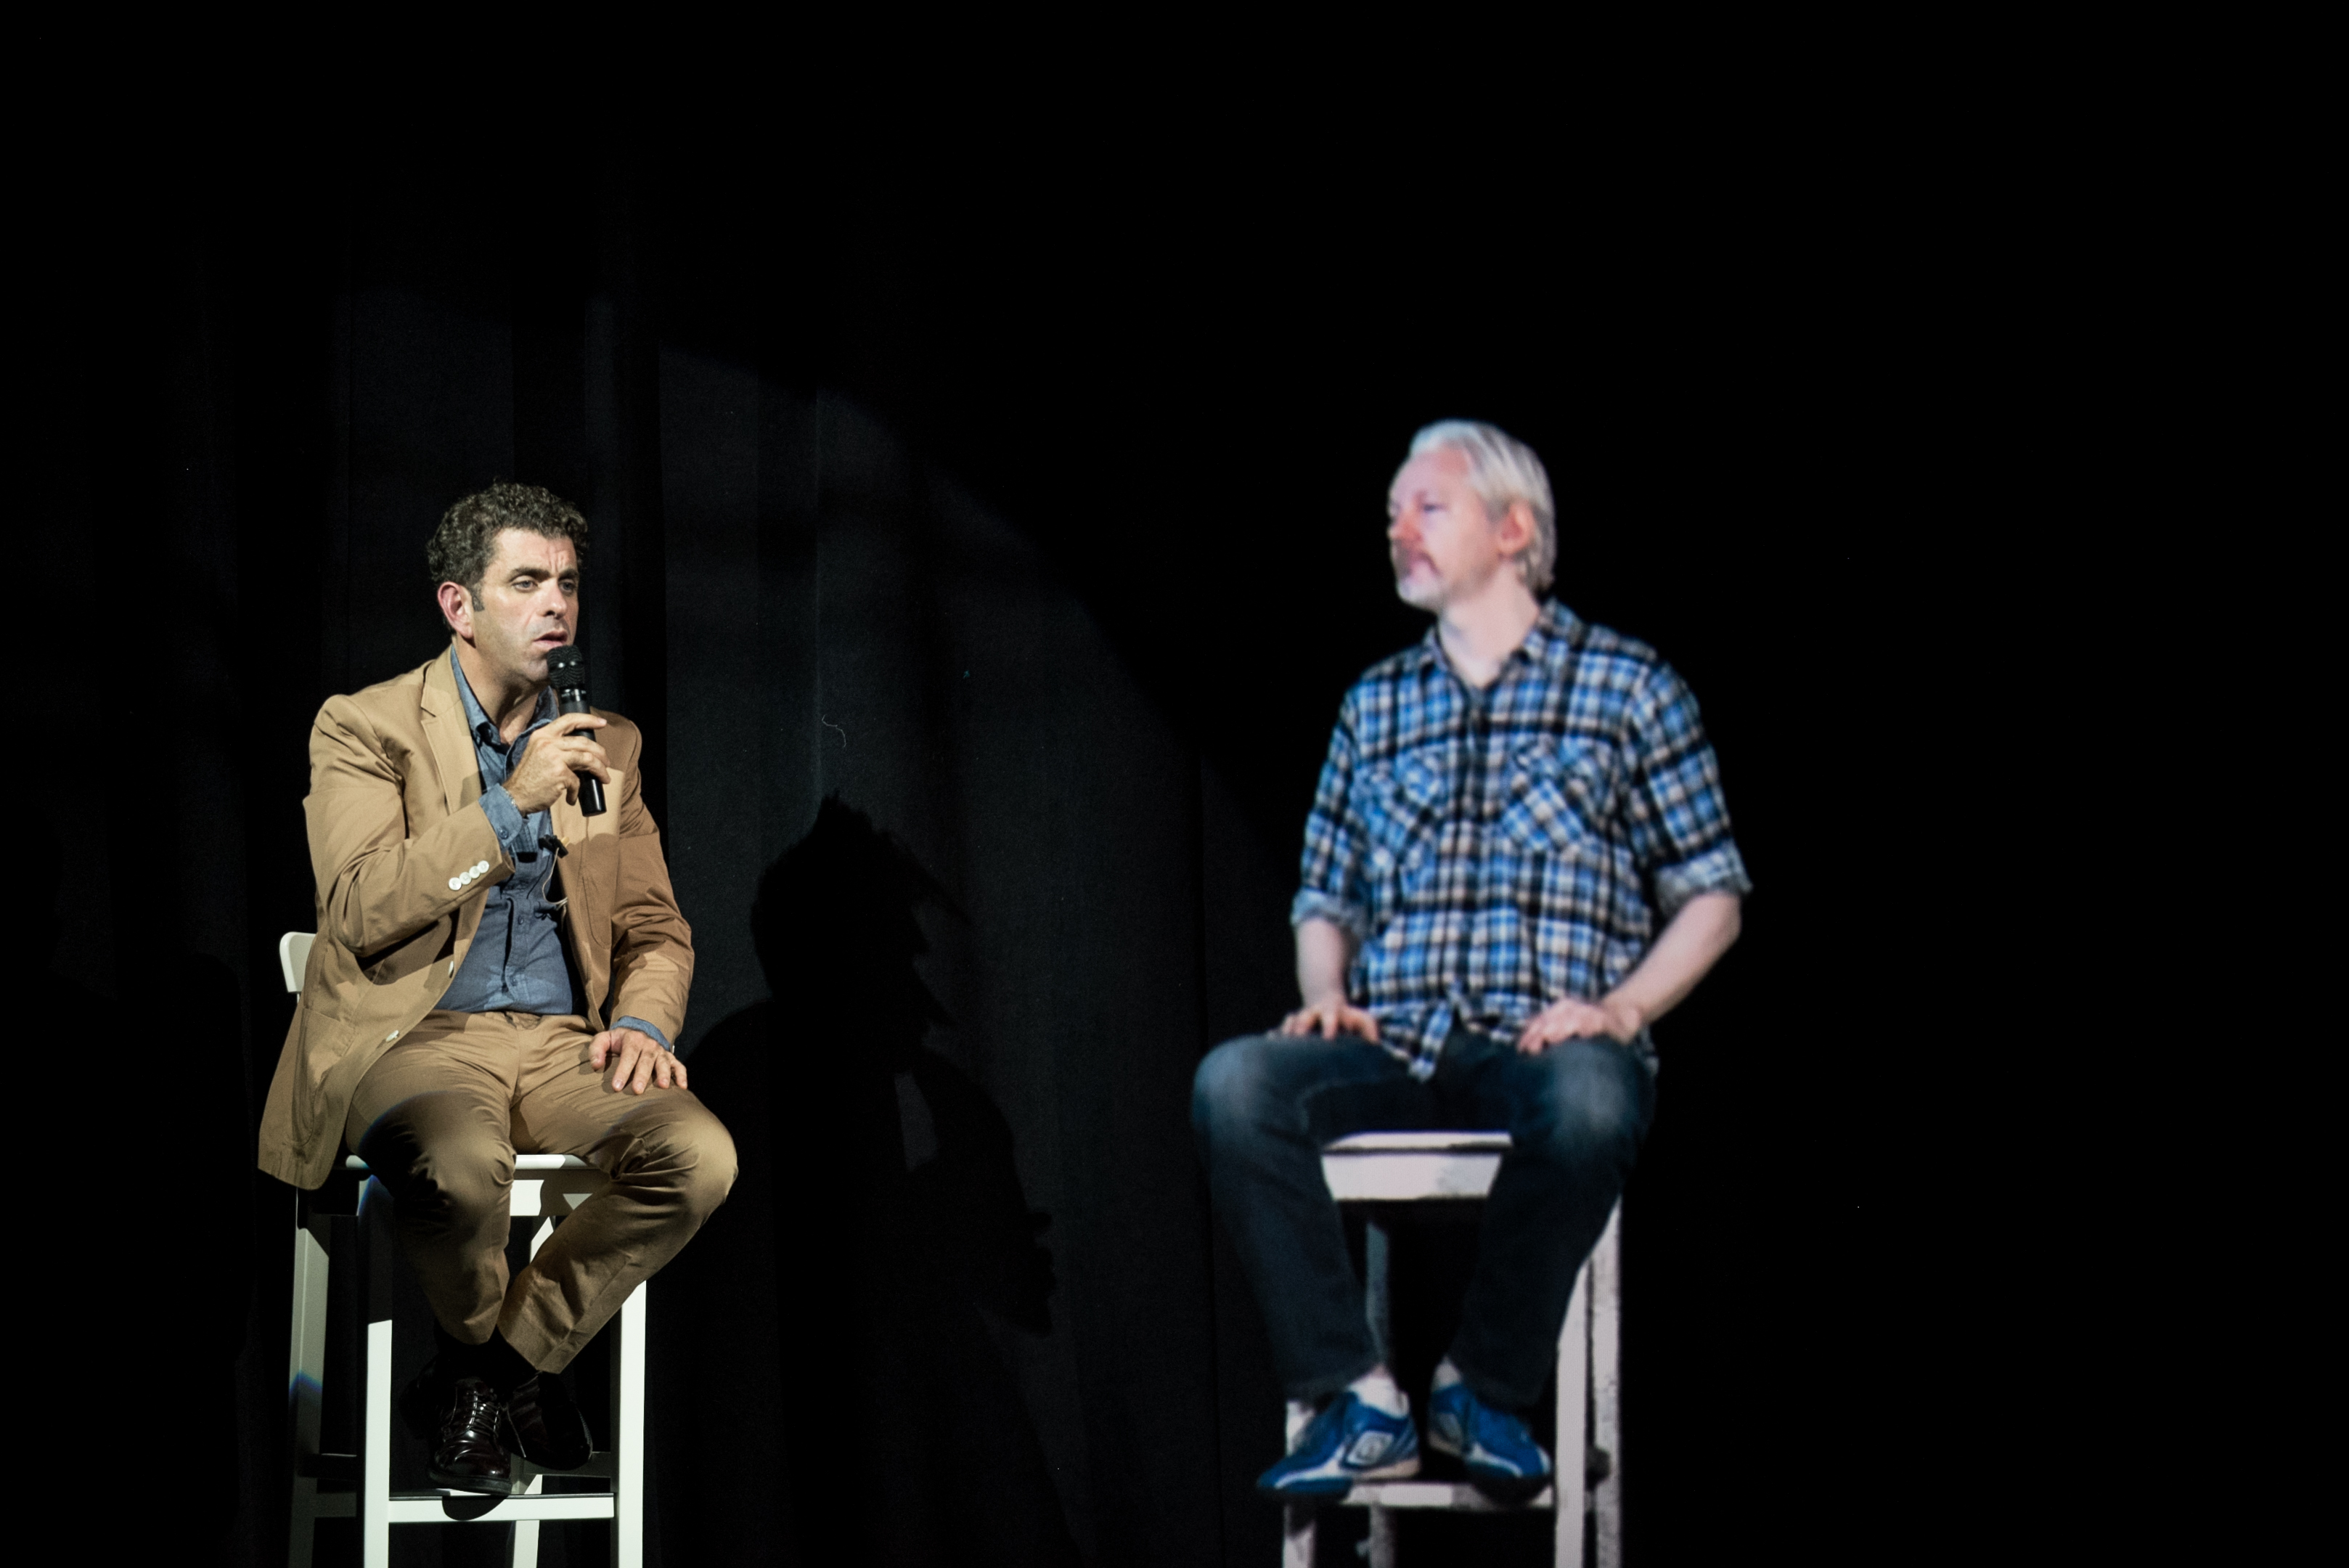 Julian Assange appears by hologram at The Nantucket Project on Sept. 28, 2014, alongside Eugene Jarecki.